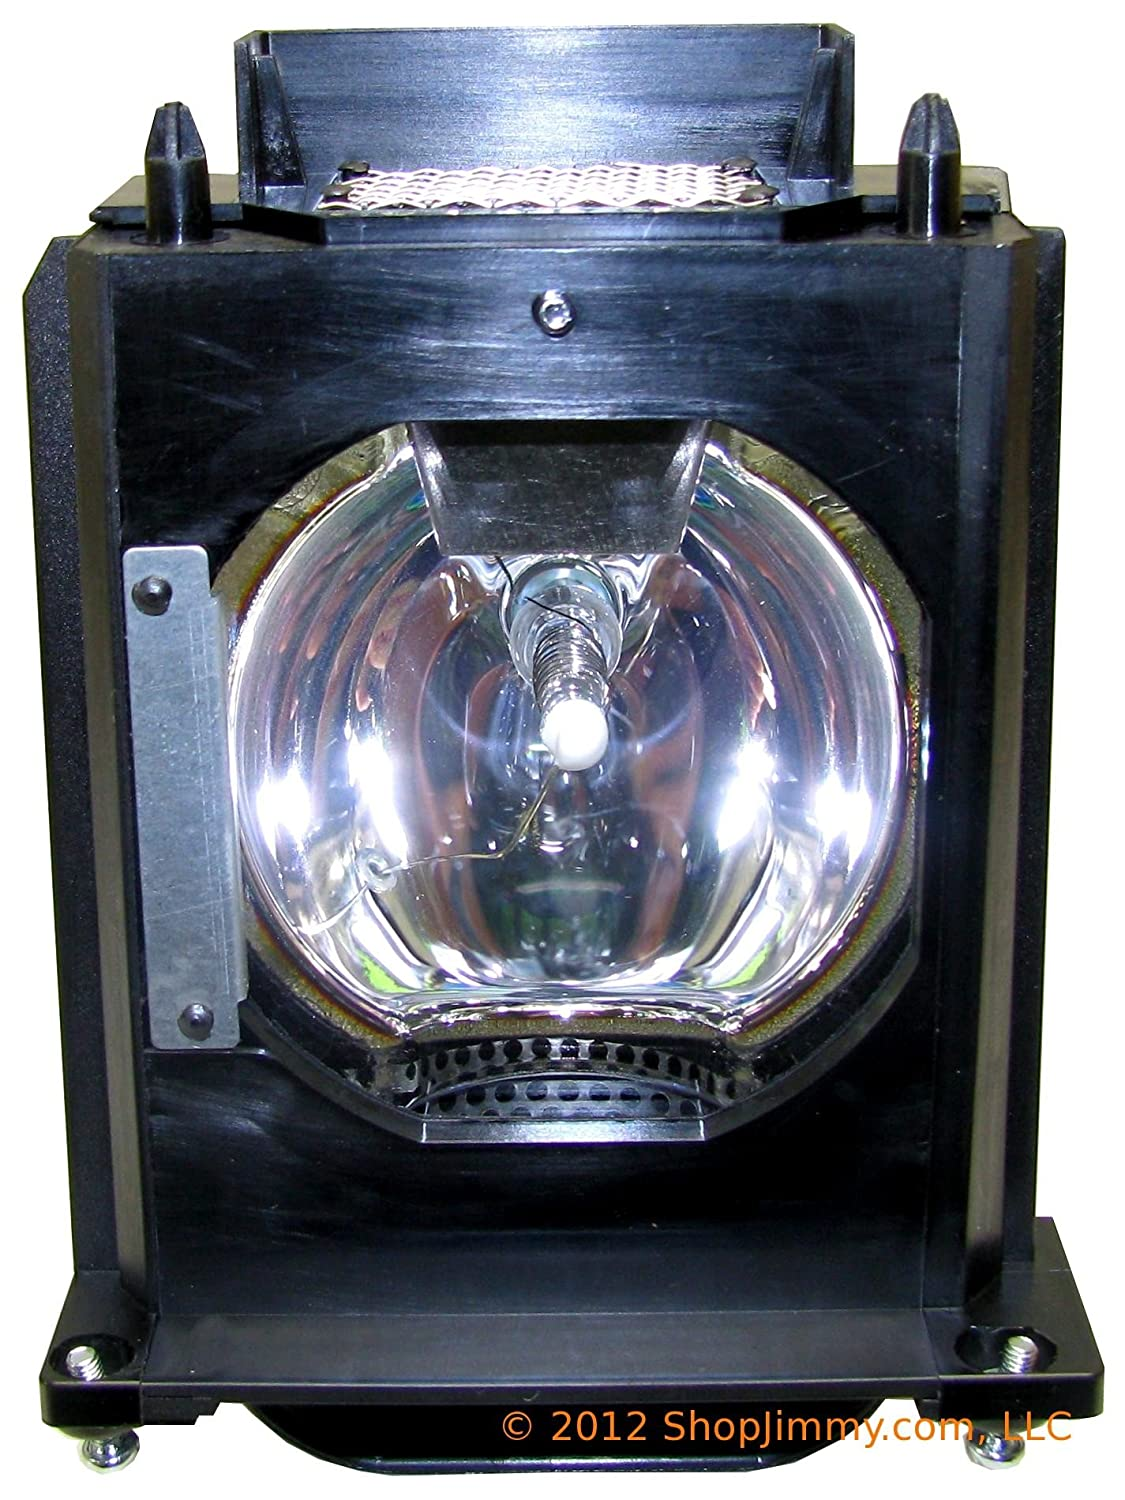 htm bulb shopjimmy side philips phi mitsubishi replacement dlp ne bare rp lamp sj